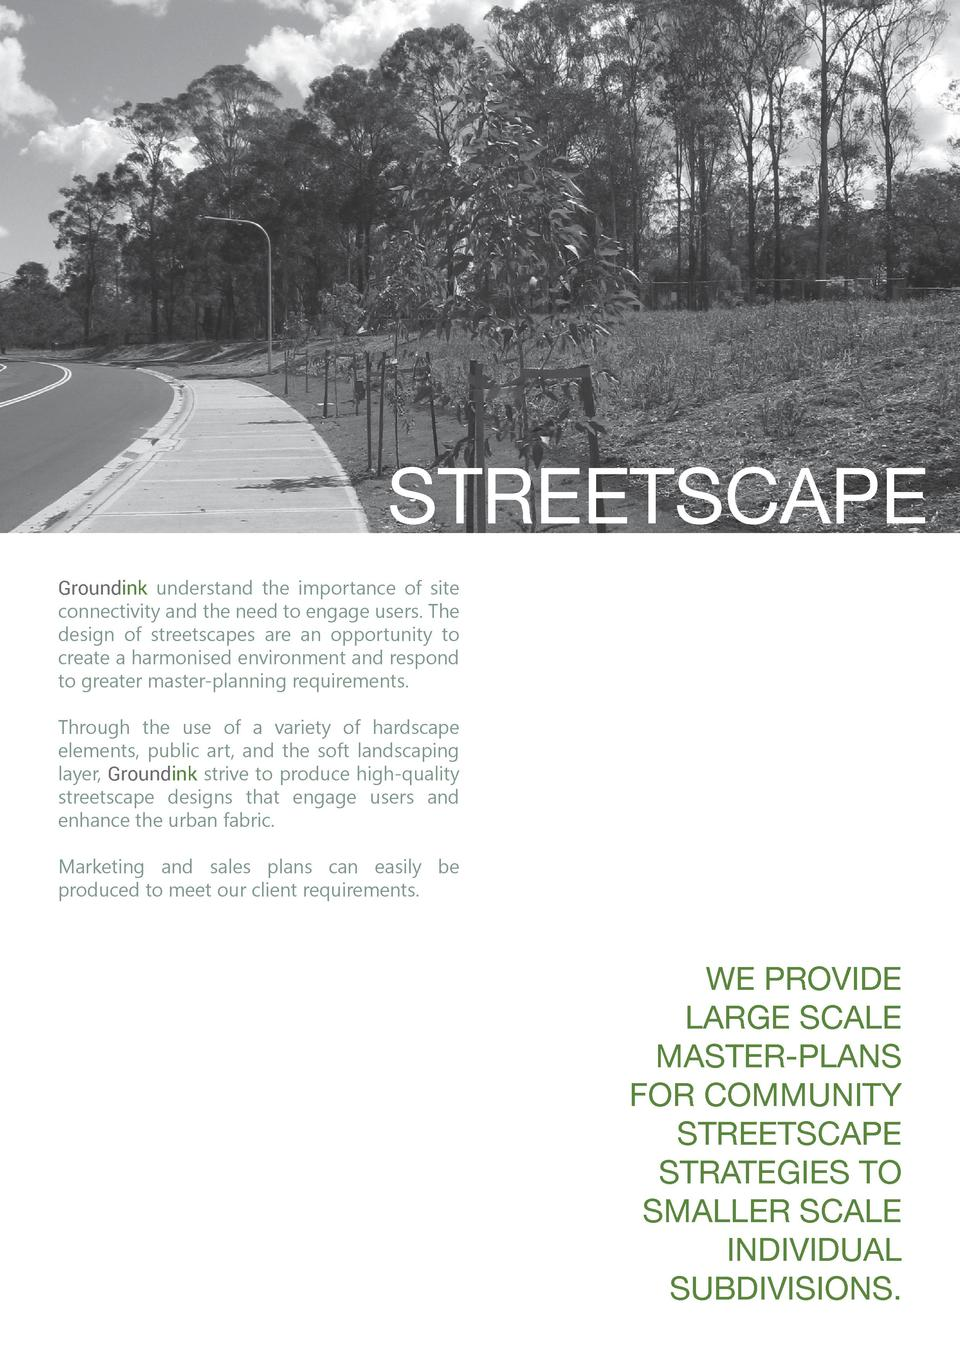 STREETSCAPE Groundink understand the importance of site connectivity and the need to engage users. The design of streetsca...